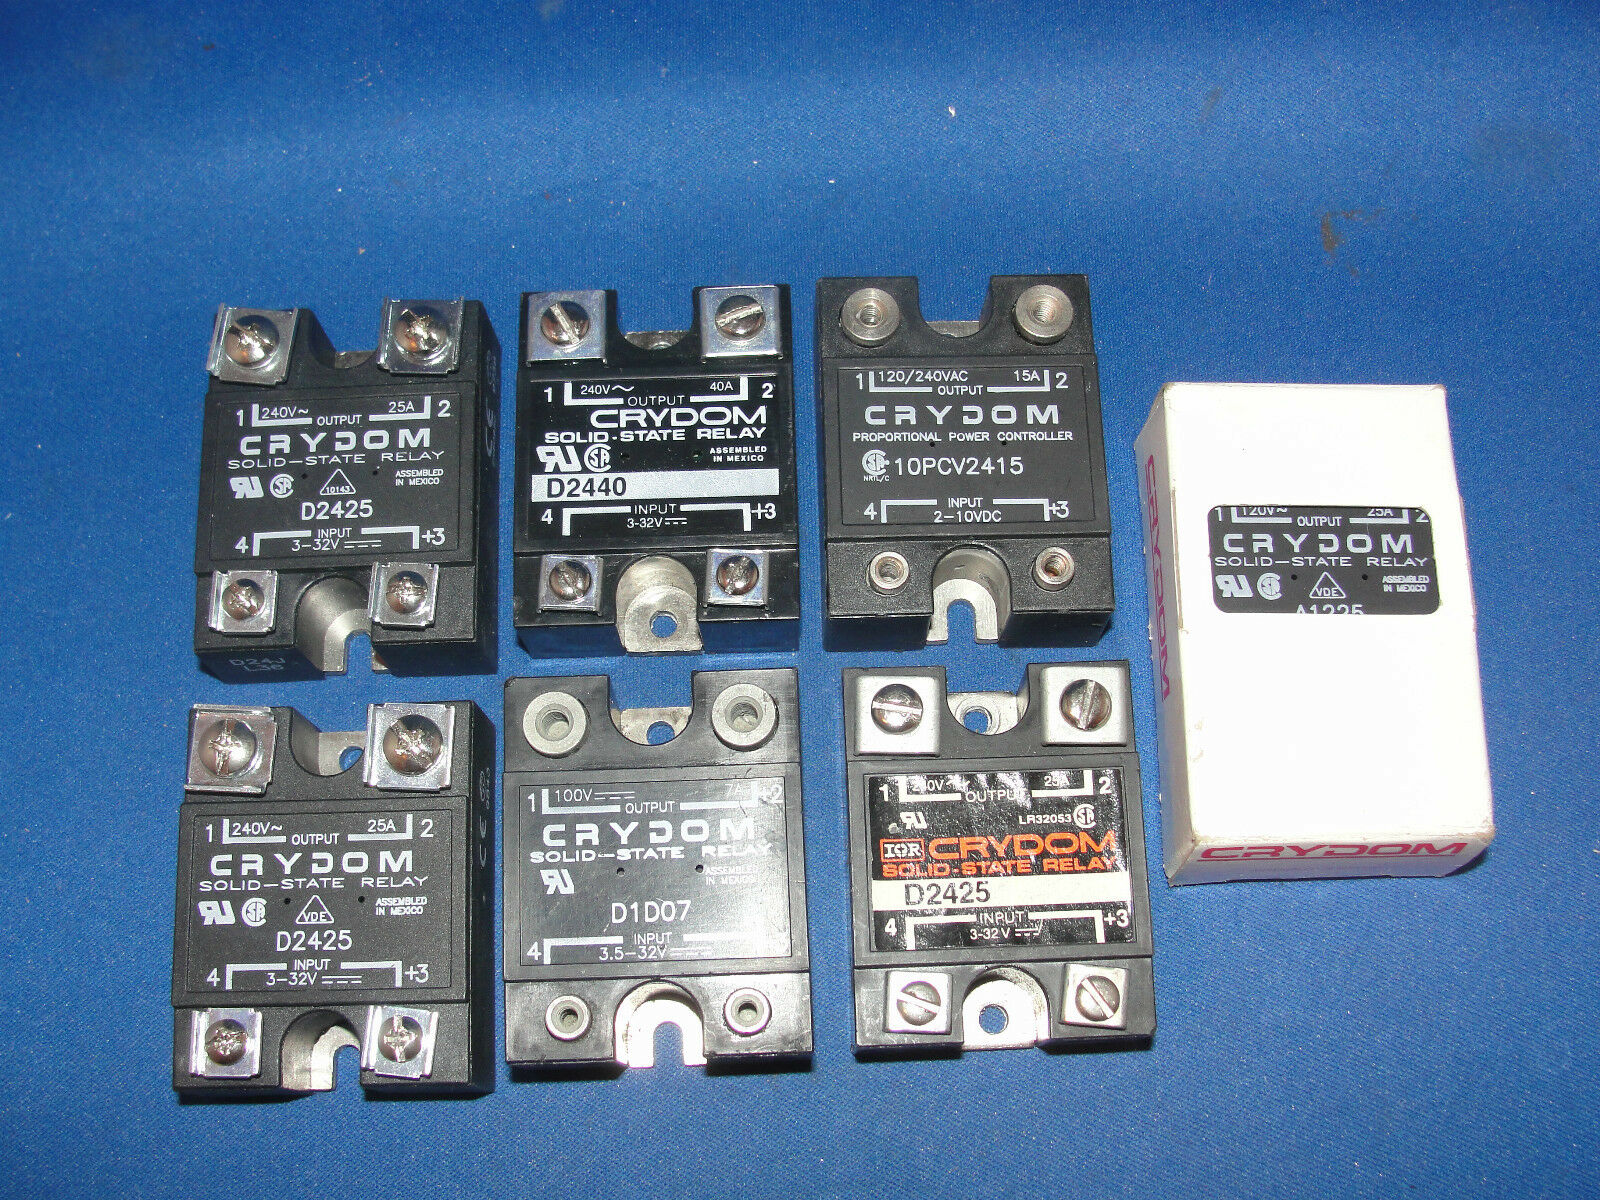 Crydom Solid State Relays 3 D2425 10pcv2415 D1d07 A1225 D2440 Lot Relay 1 Of 1only Available